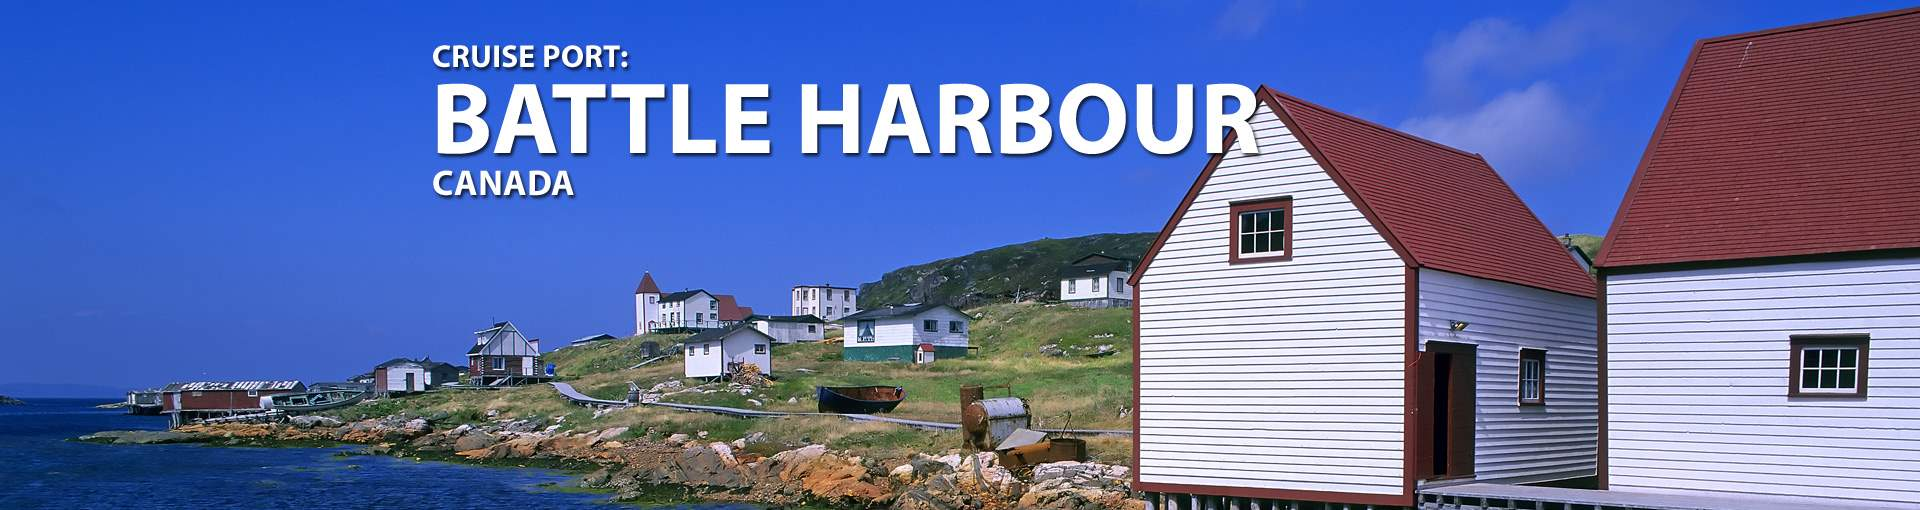 Cruises to Battle Harbour, Canada